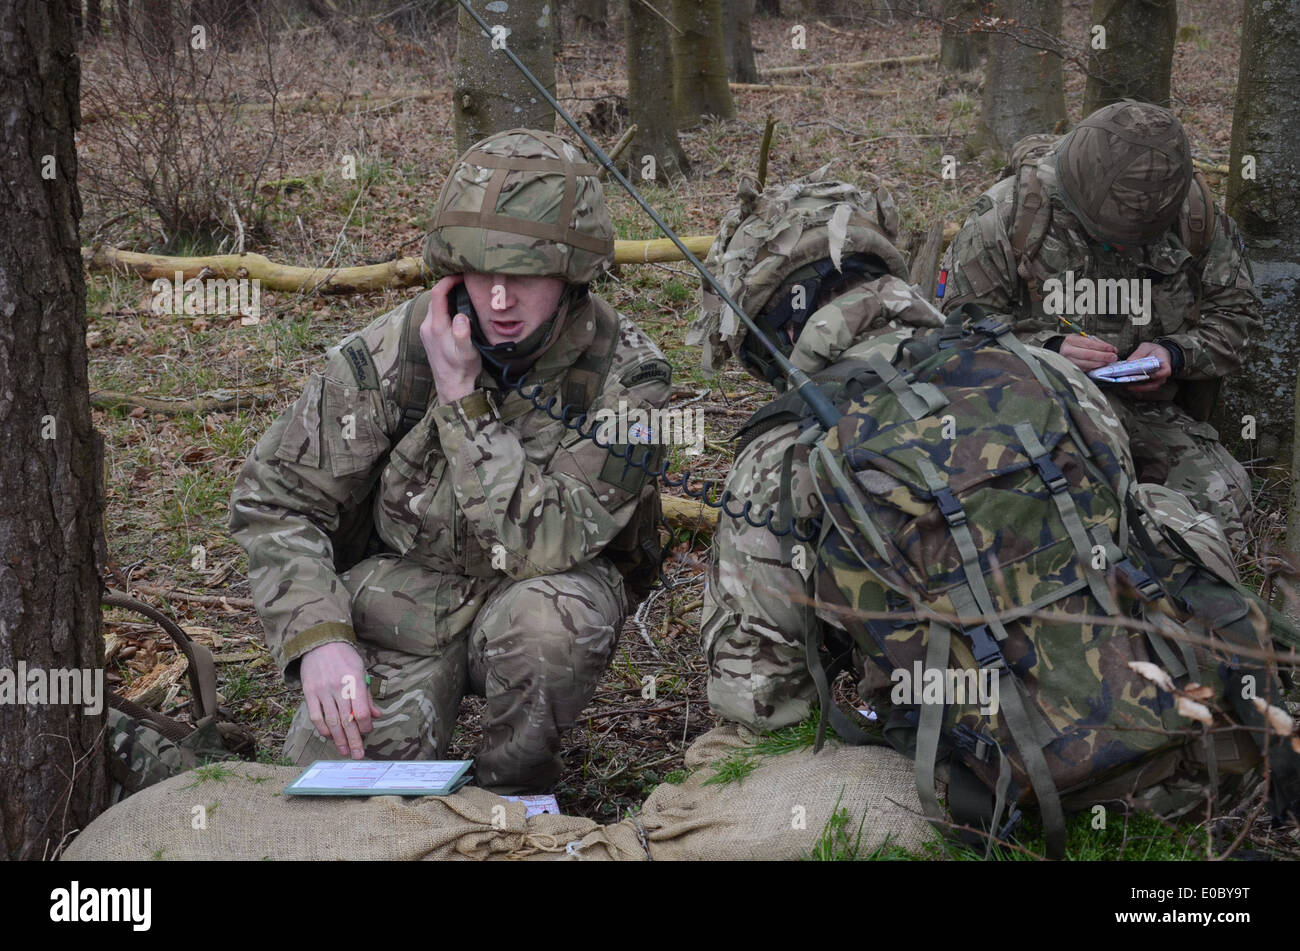 The BOWMAN family of tactical radios provides the British